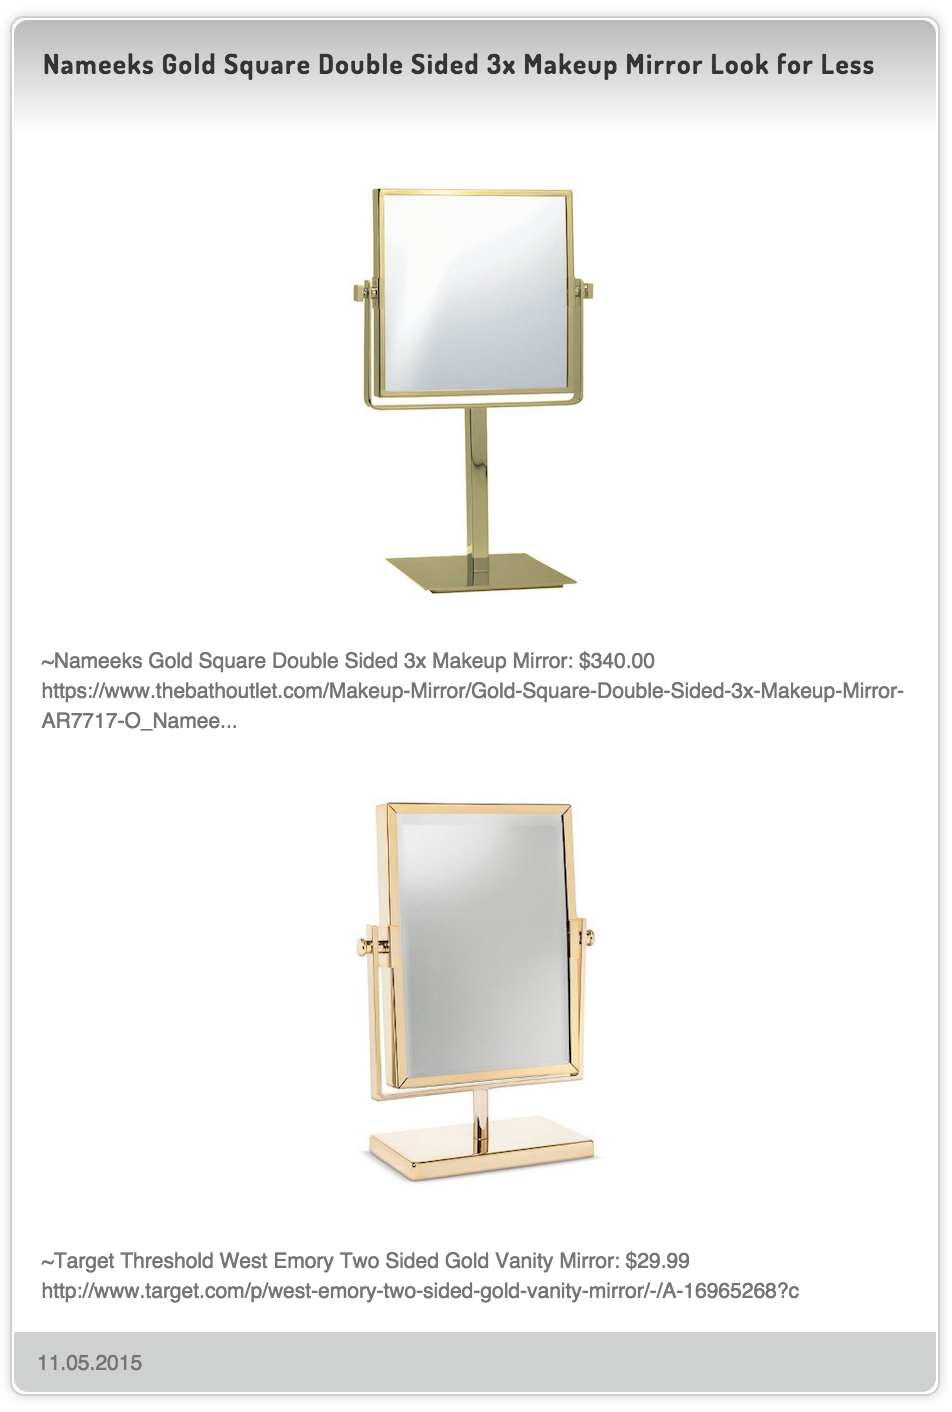 Nameeks Gold Square Double Sided 3x Makeup Mirror Look For Less